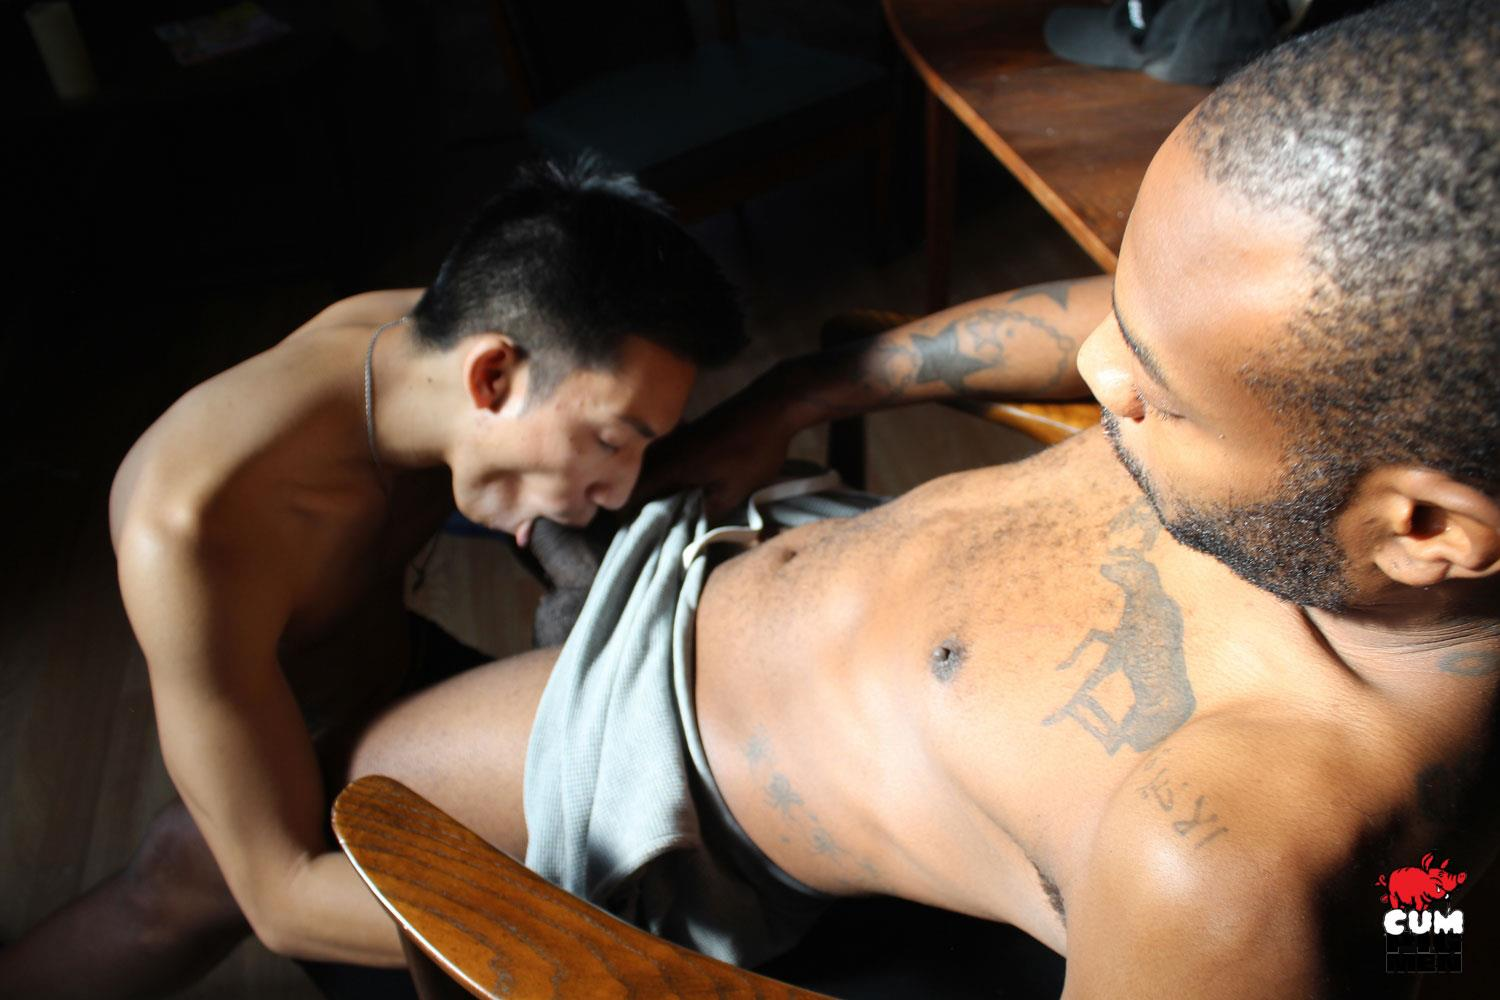 Cum-Pig-Men-David-Ace-and-August-Alexander-Big-Black-Cock-Cumming-08 August Alexander Gets His Big Black Dick Sucked By A Cum Eating Asian